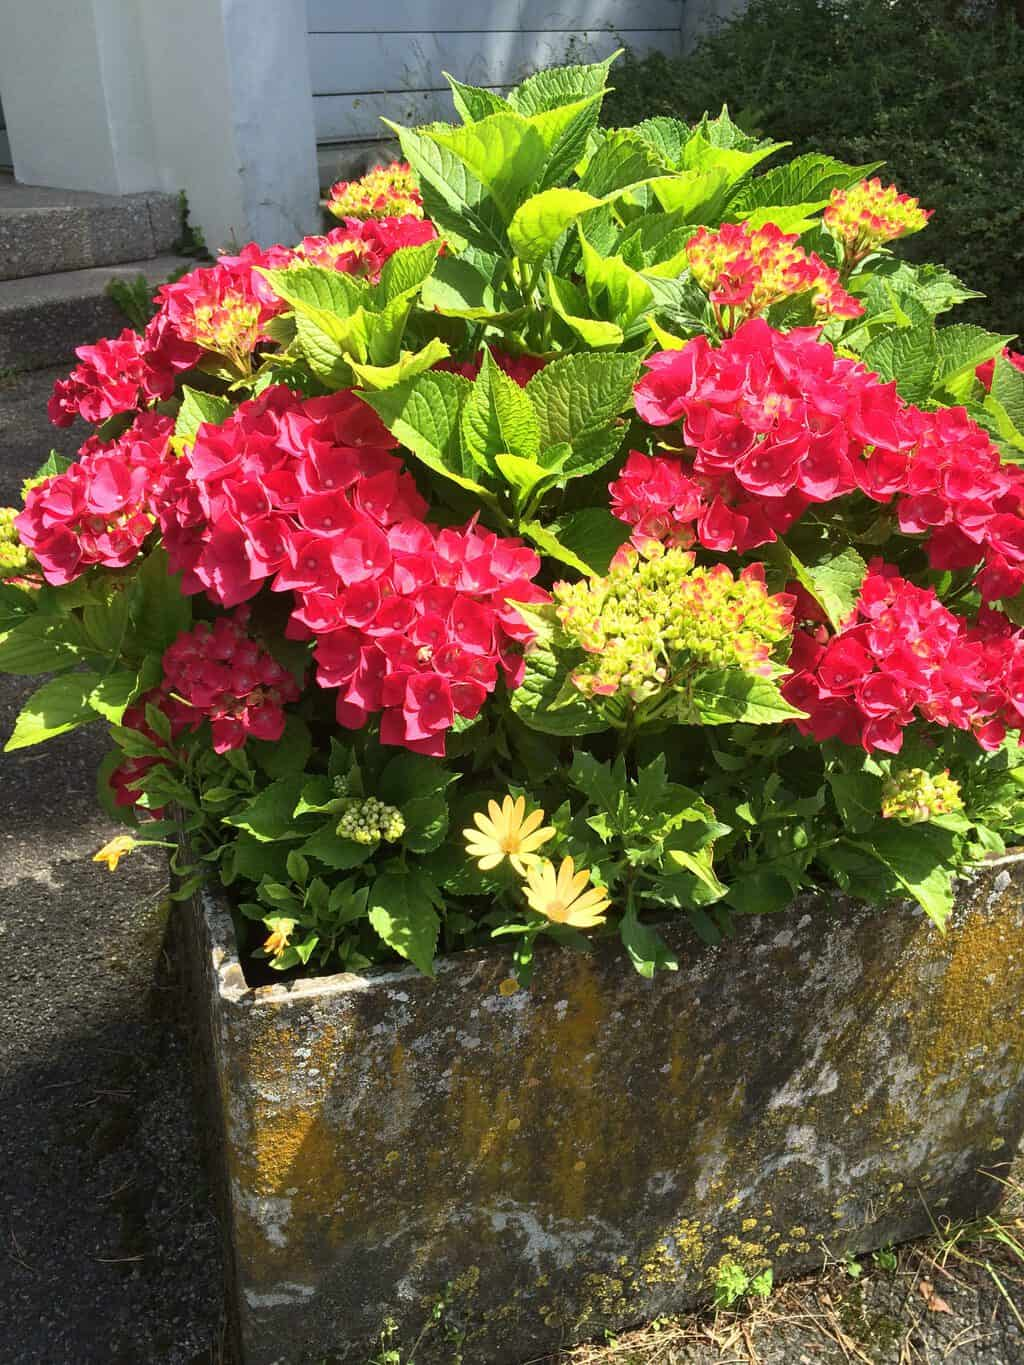 PInk hydrangeas in stone pot